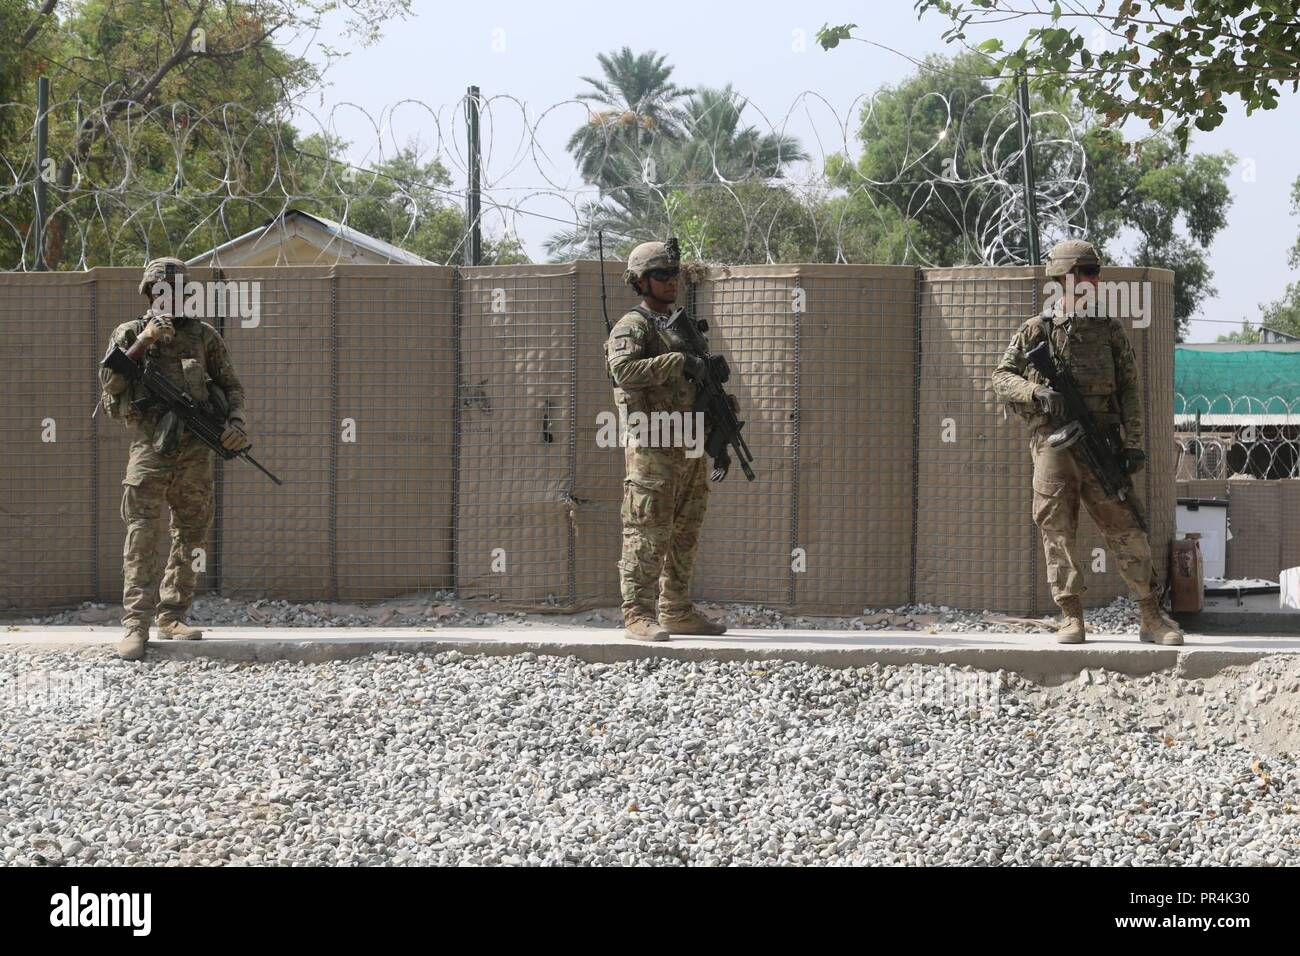 Soldiers from 2nd Battalion, 23rd Infantry Regiment, 1st